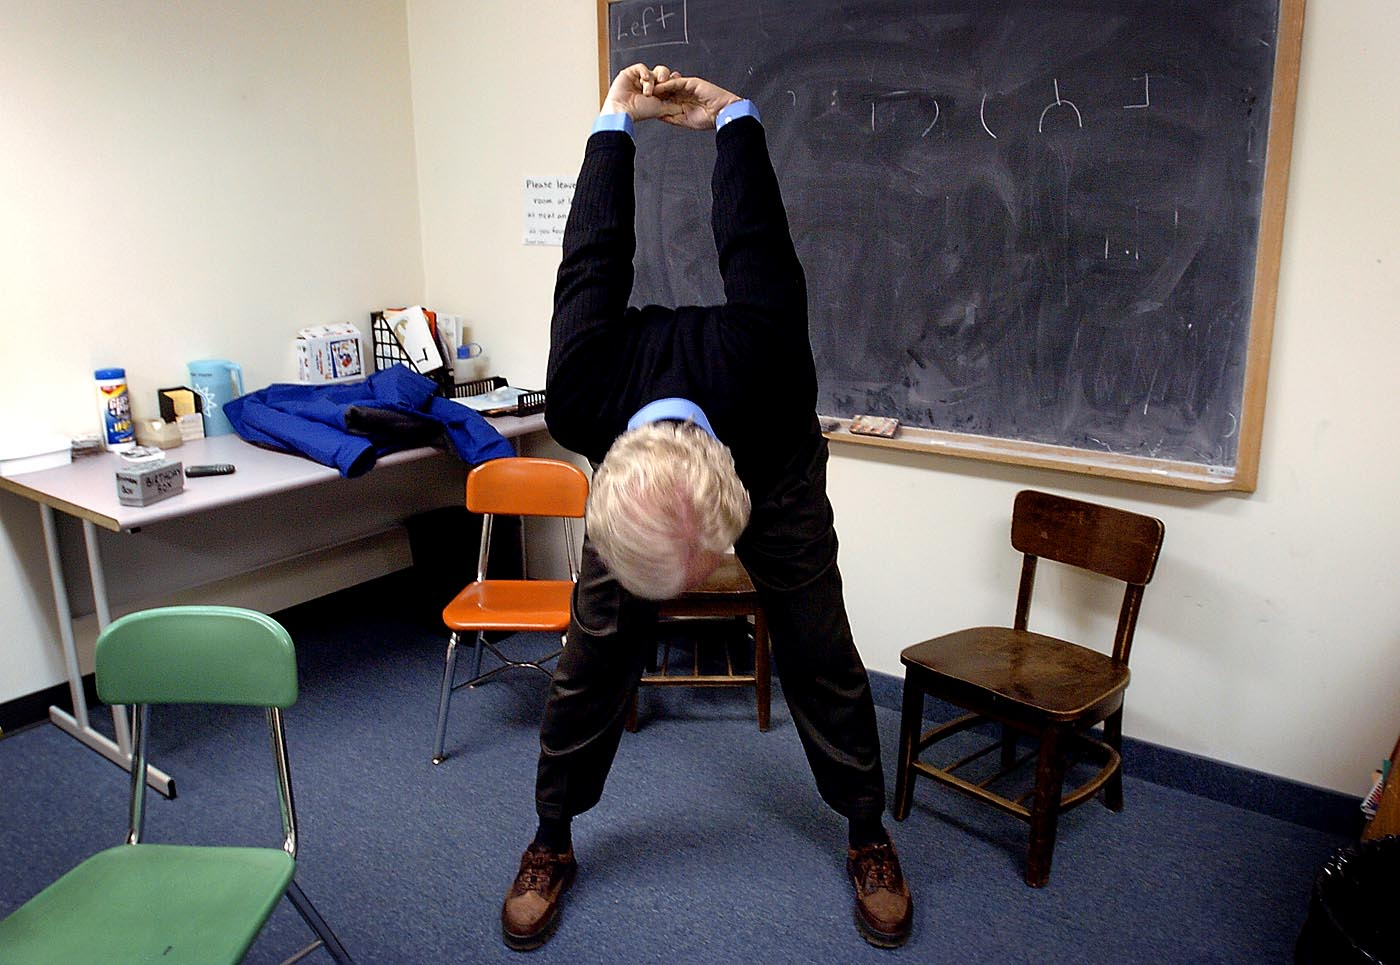 Senator Joe Lieberman stretches in a classroom at Temple Beth Jacob in Concord before a presidential forum. He also did push-ups and jumping-jacks as part of his pre-debate workout routine. January 2004